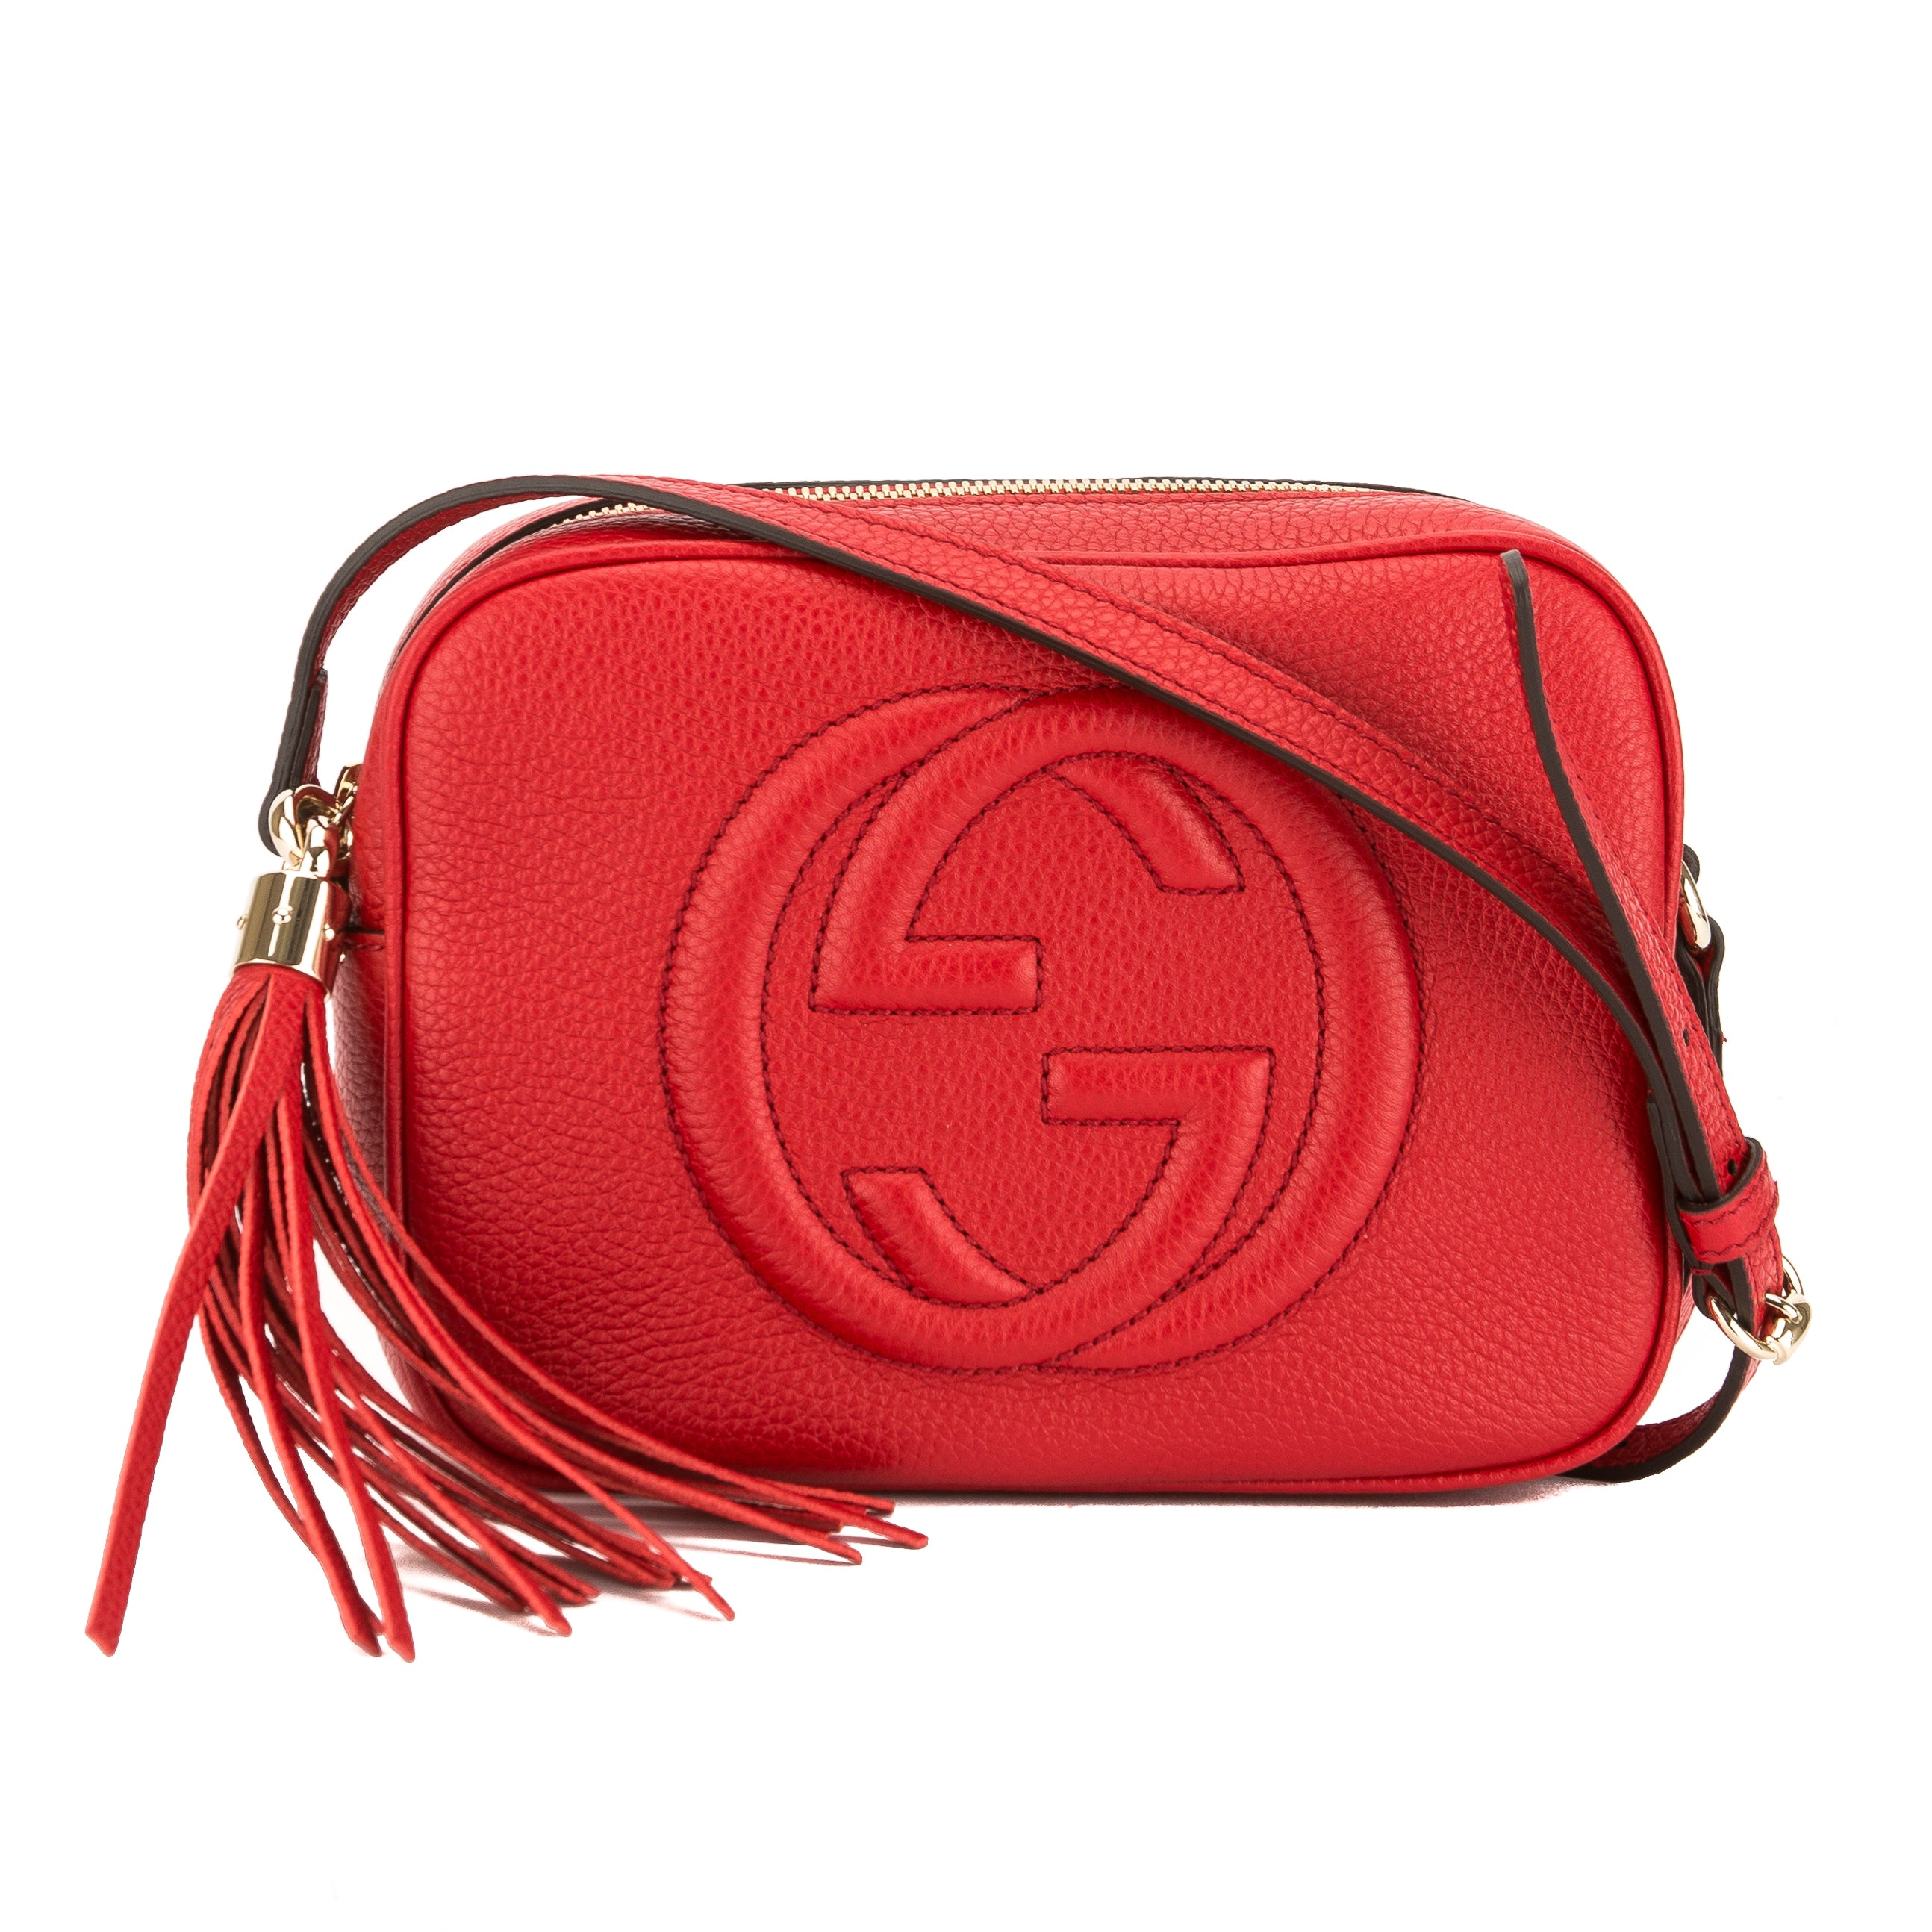 32ccd626c35 Gucci Red Soho Leather Disco Bag (New with Tags) - 3659002